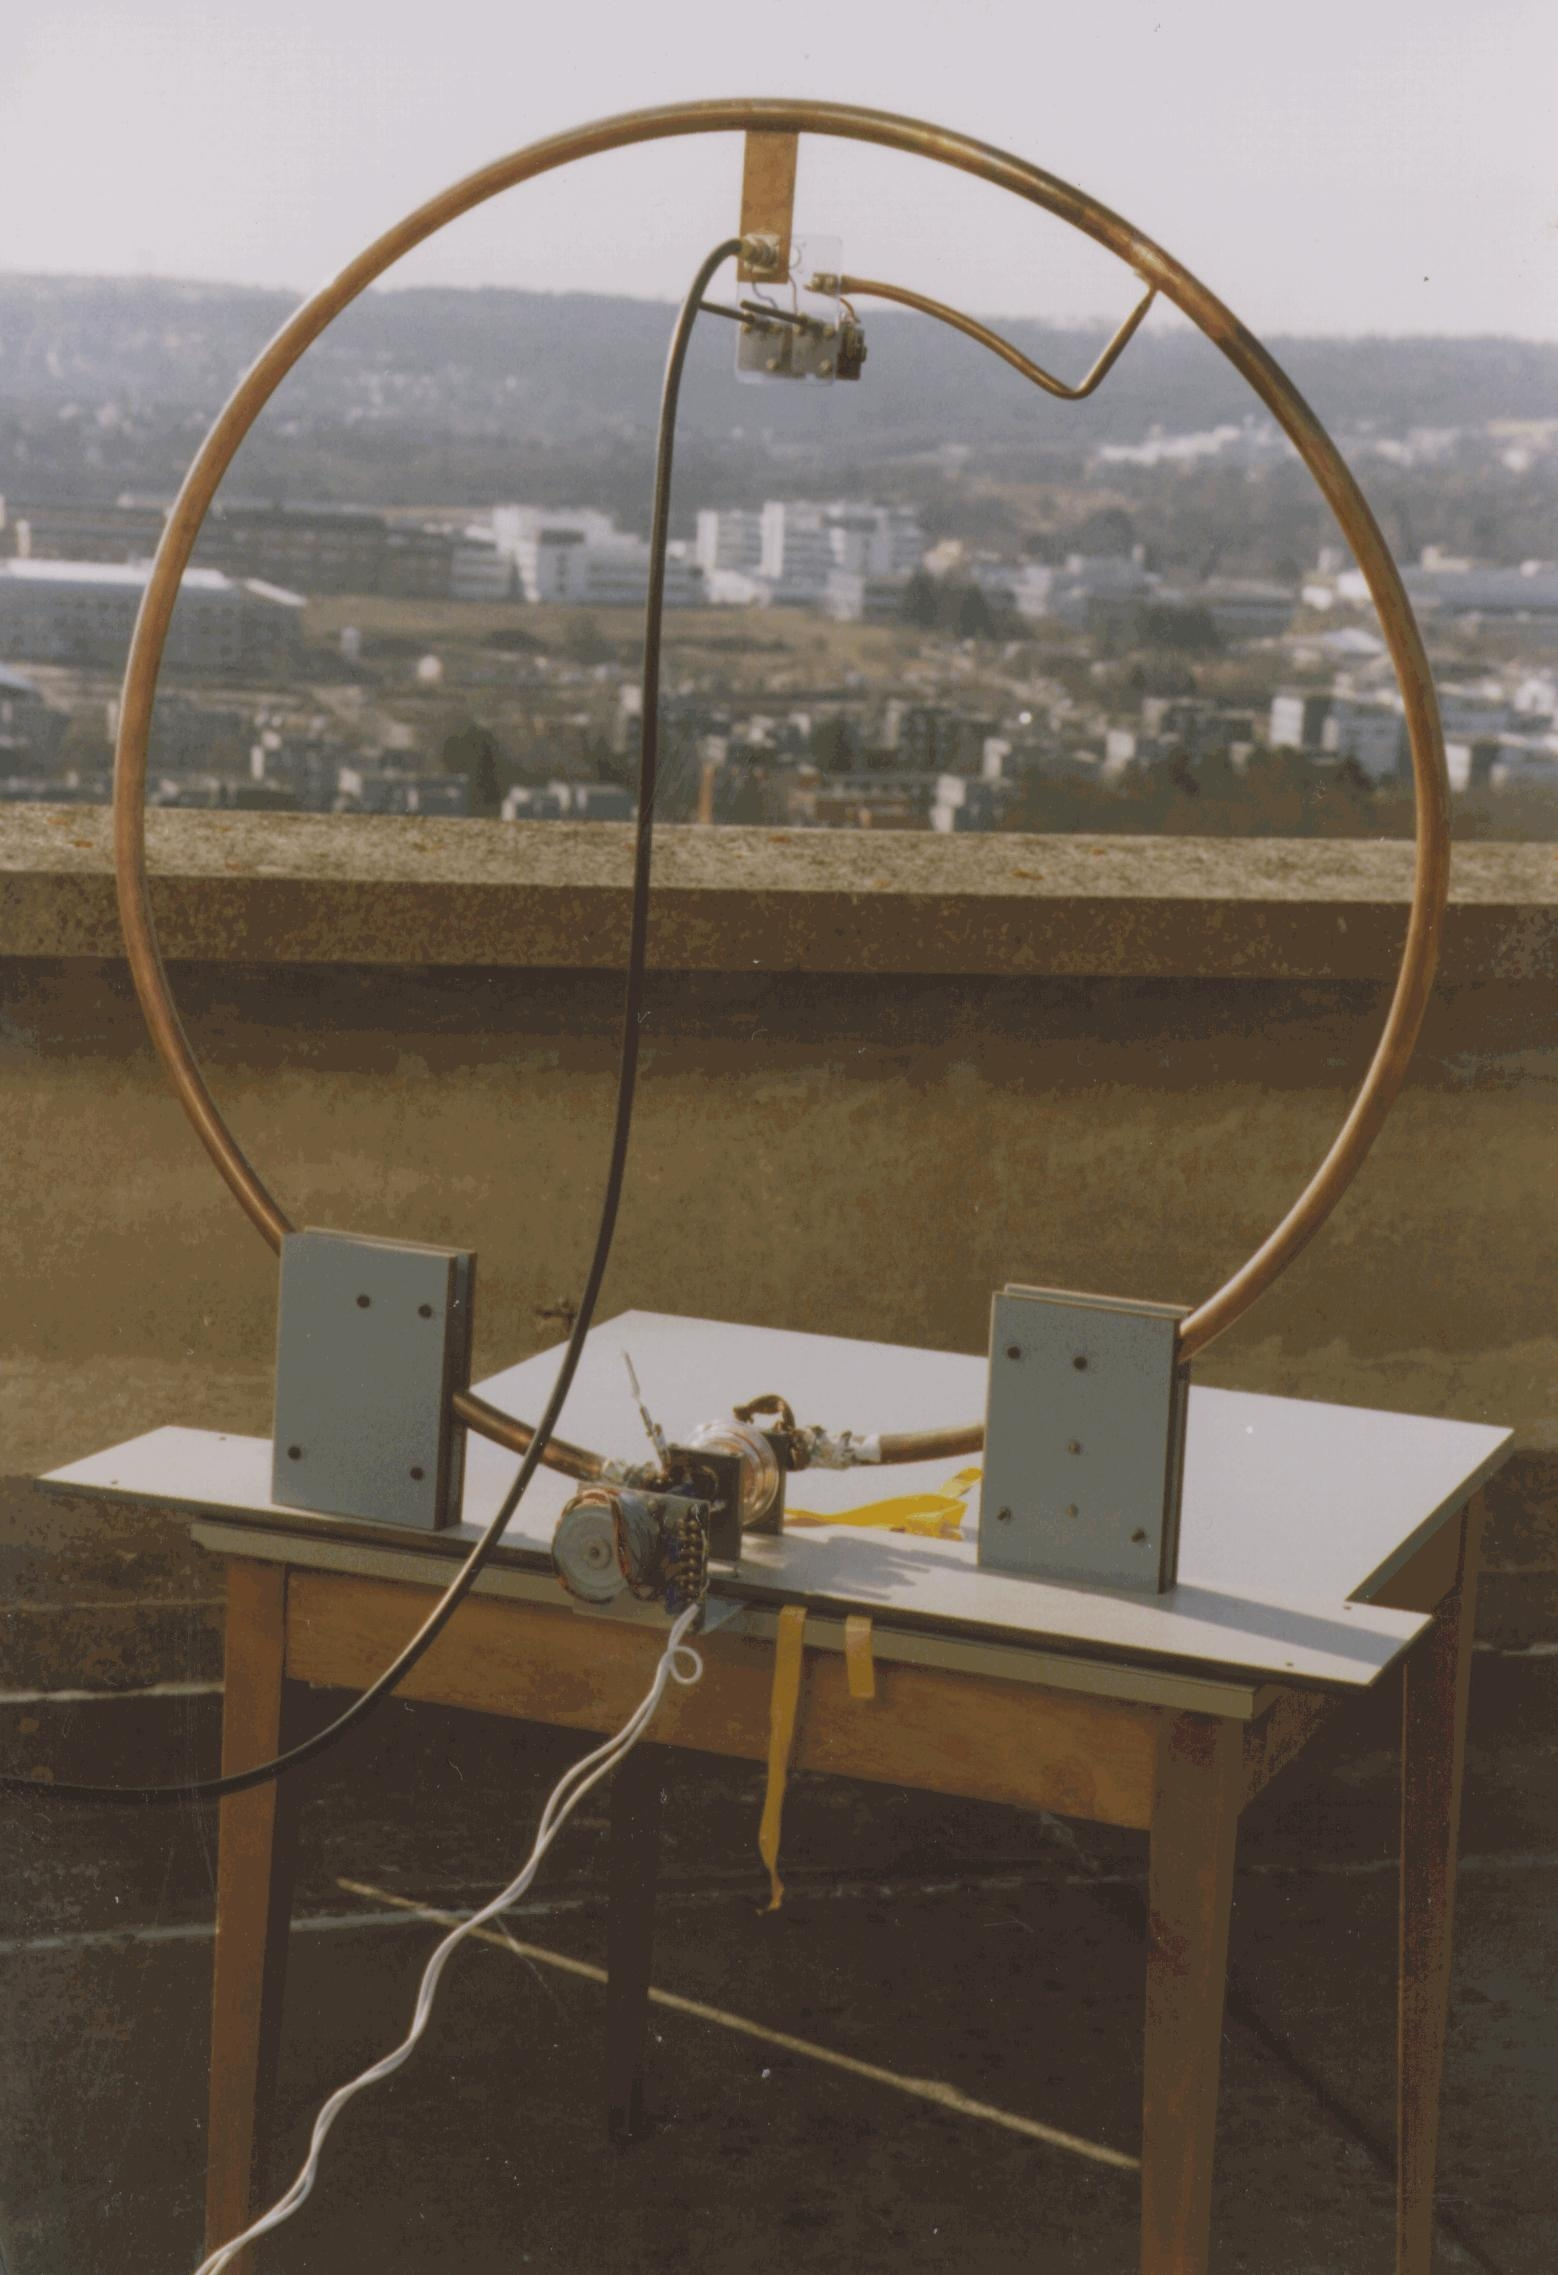 DJ3TZ's Small Tuned Loop Antenna Page